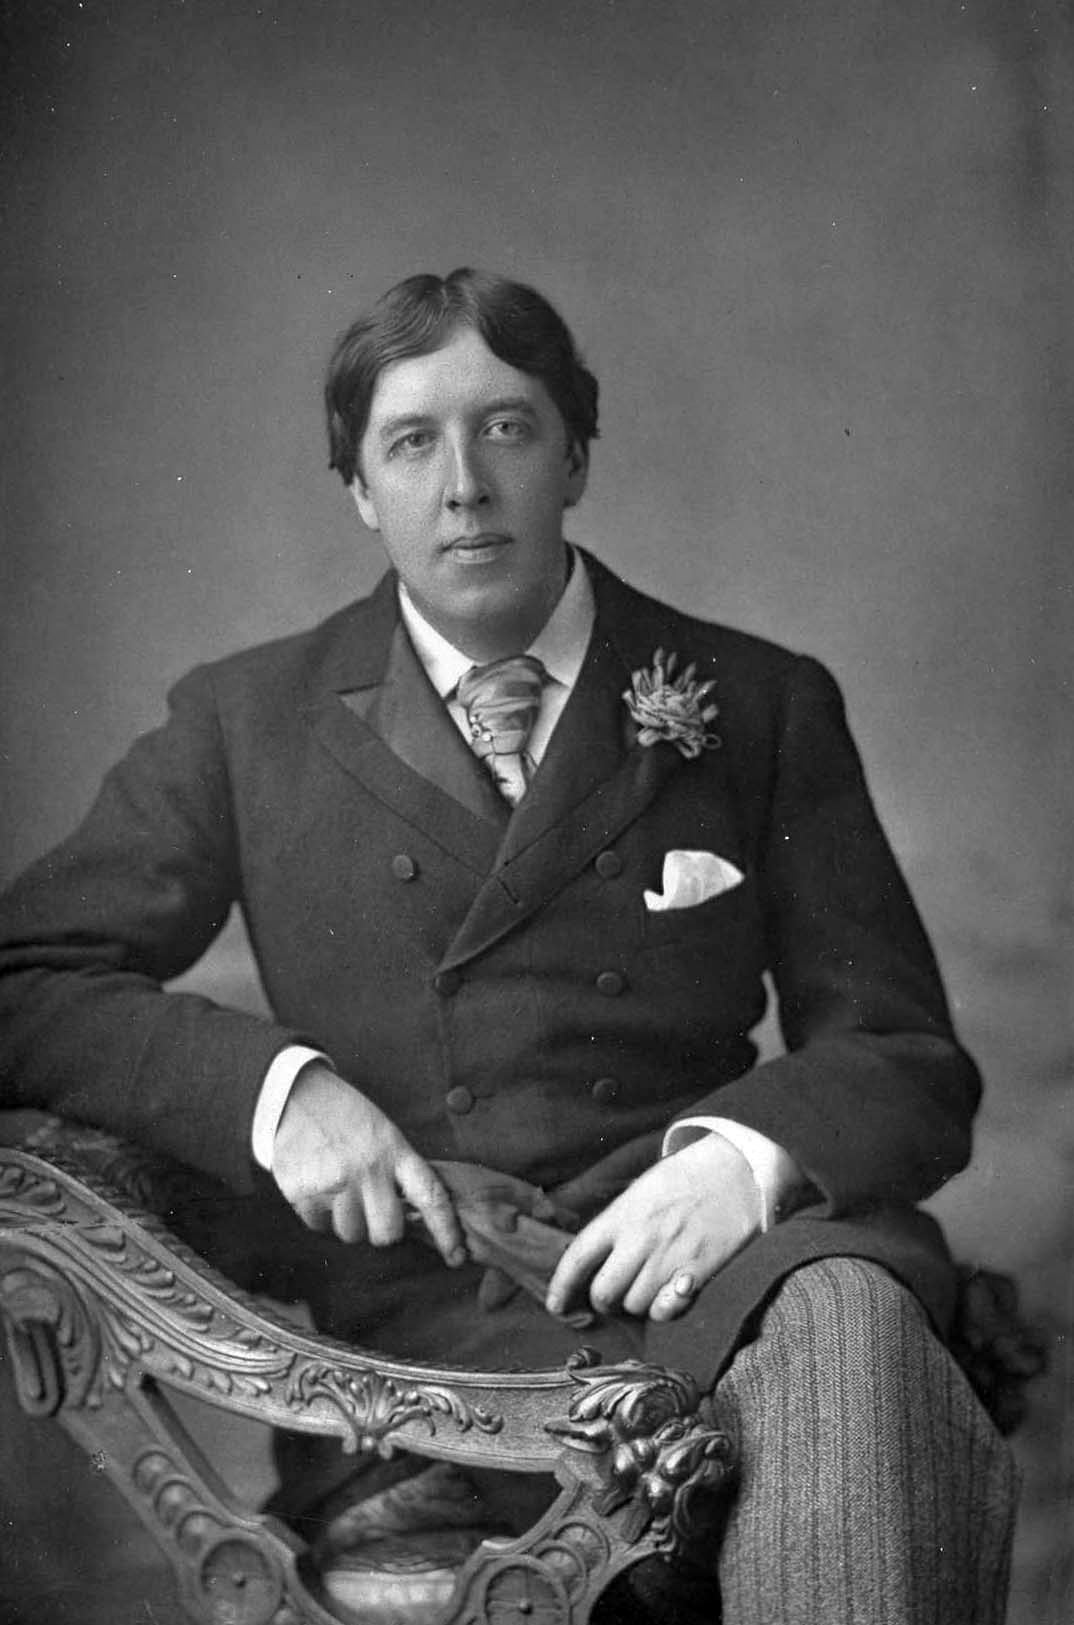 https://upload.wikimedia.org/wikipedia/commons/0/0e/Oscar_Wilde_(1854-1900)_1889,_May_23._Picture_by_W._and_D._Downey.jpg